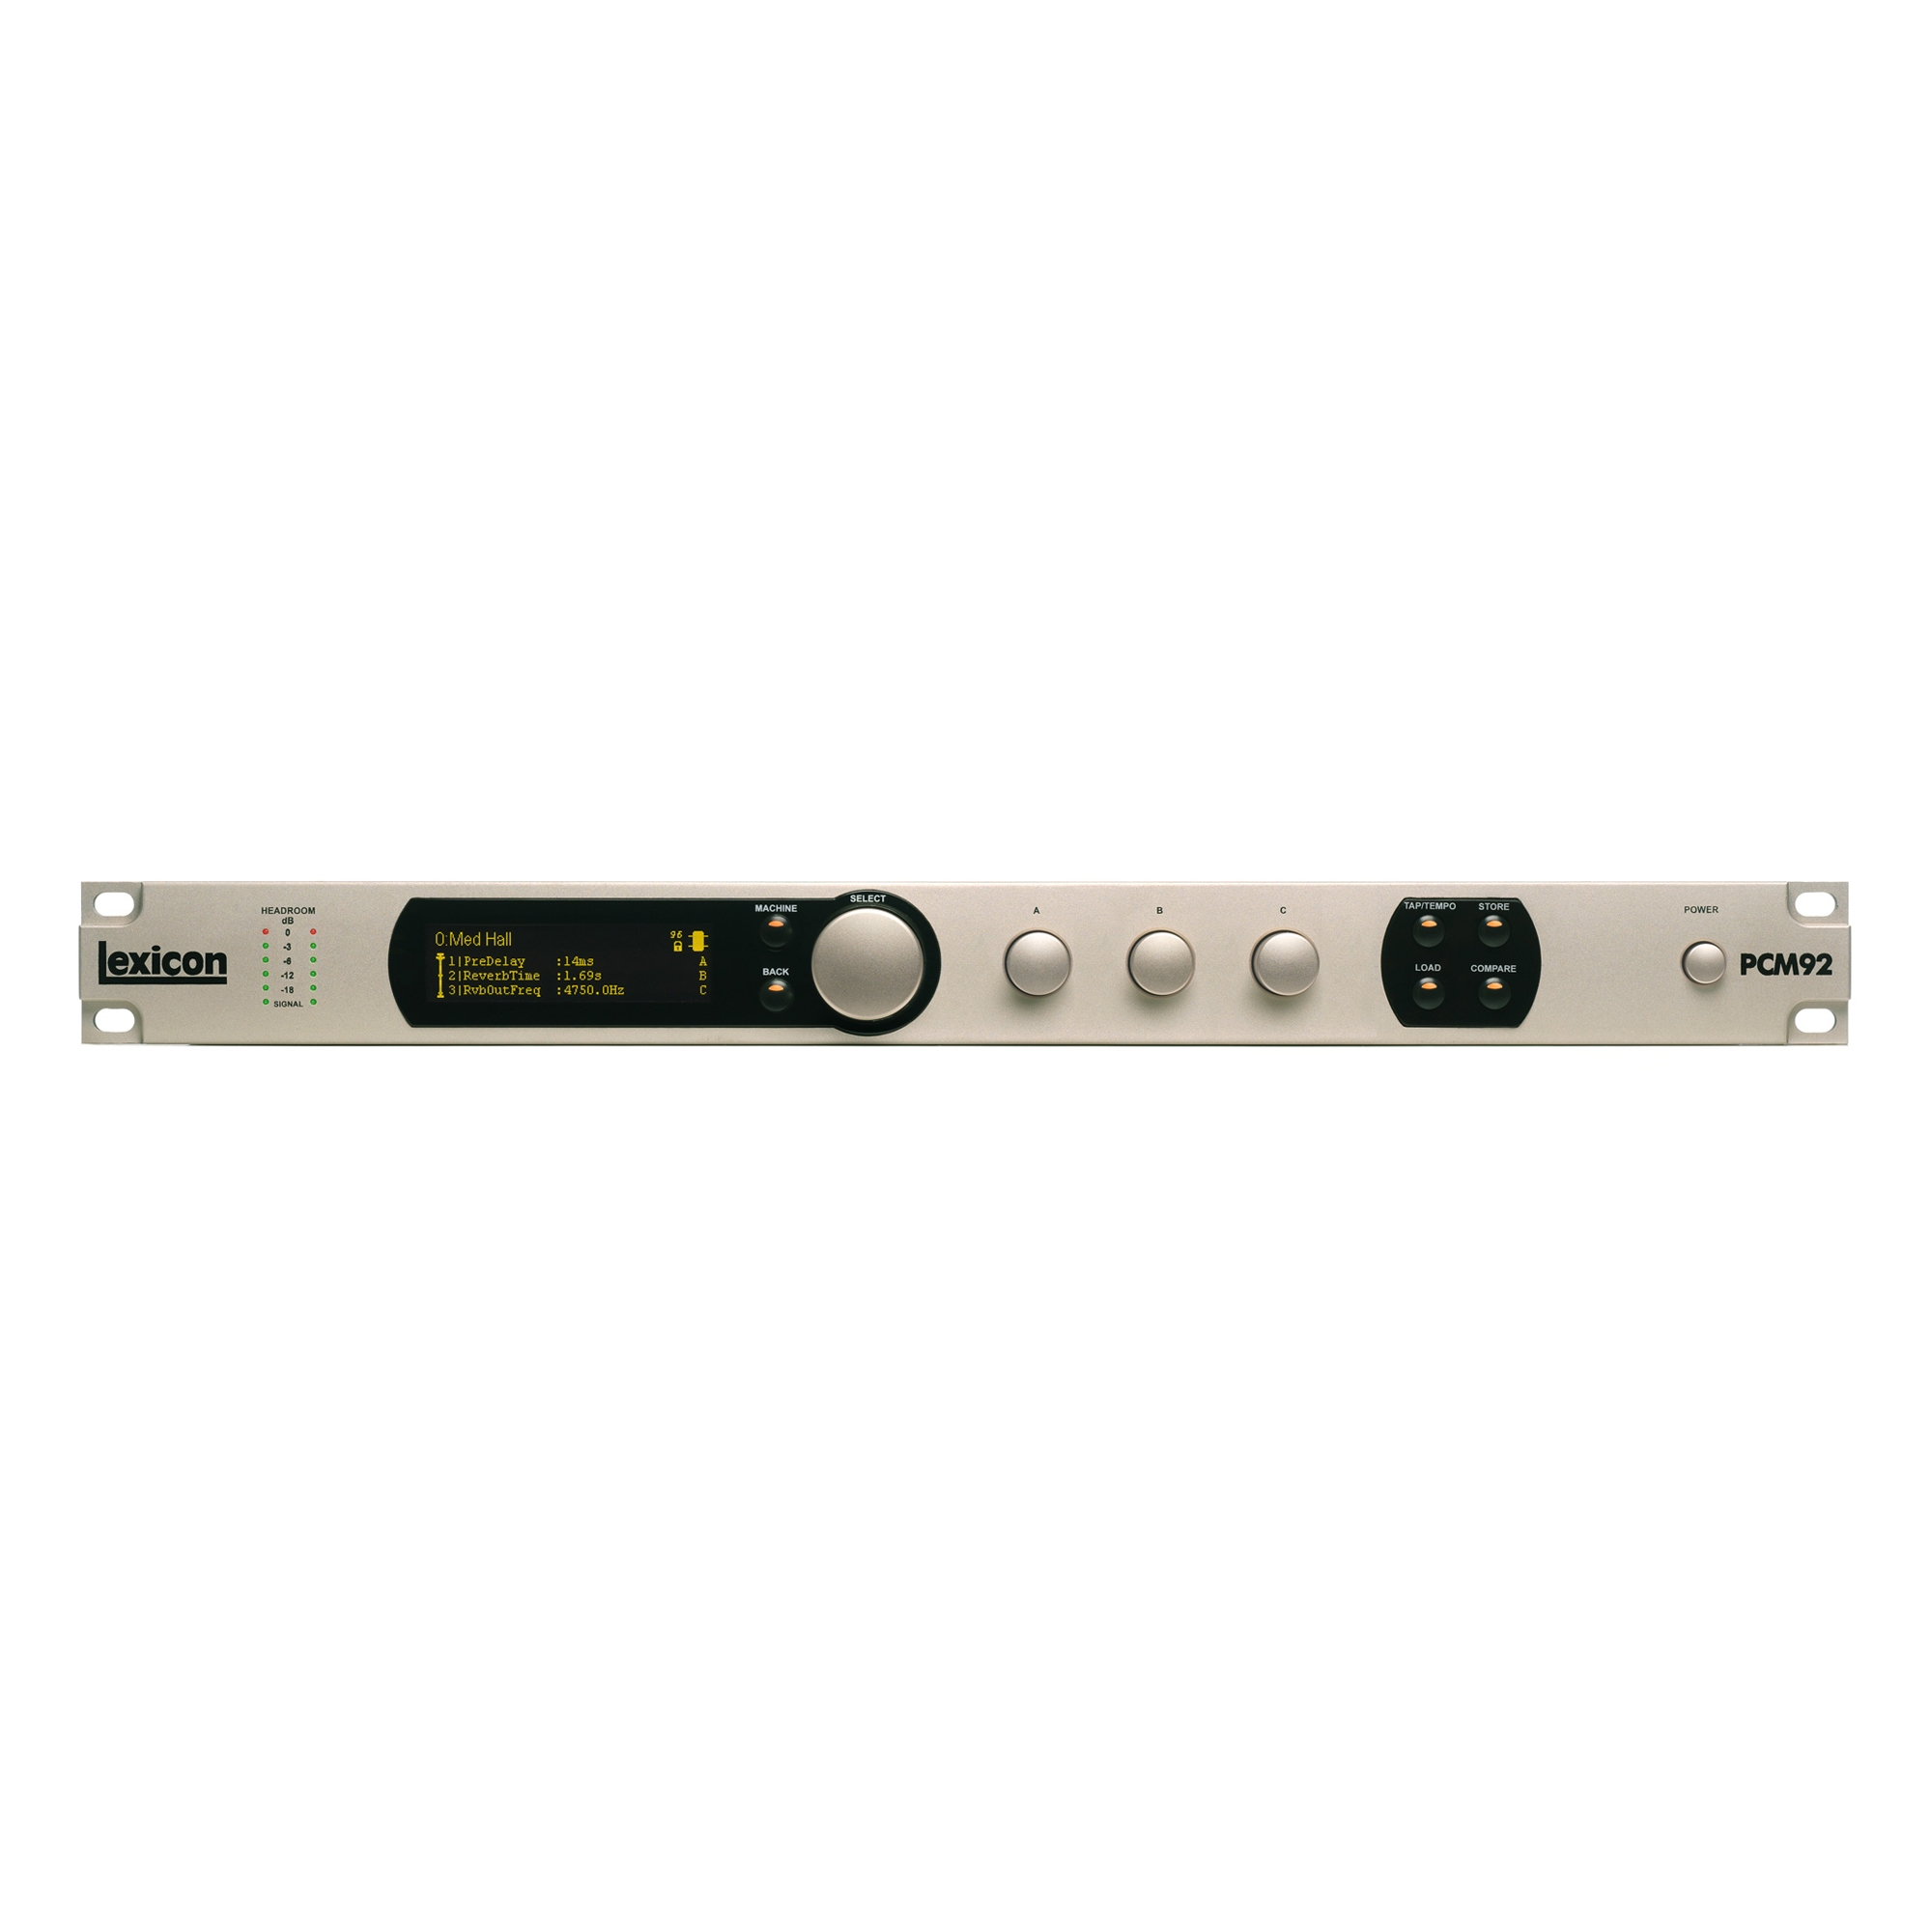 Reverb and Effects Processor